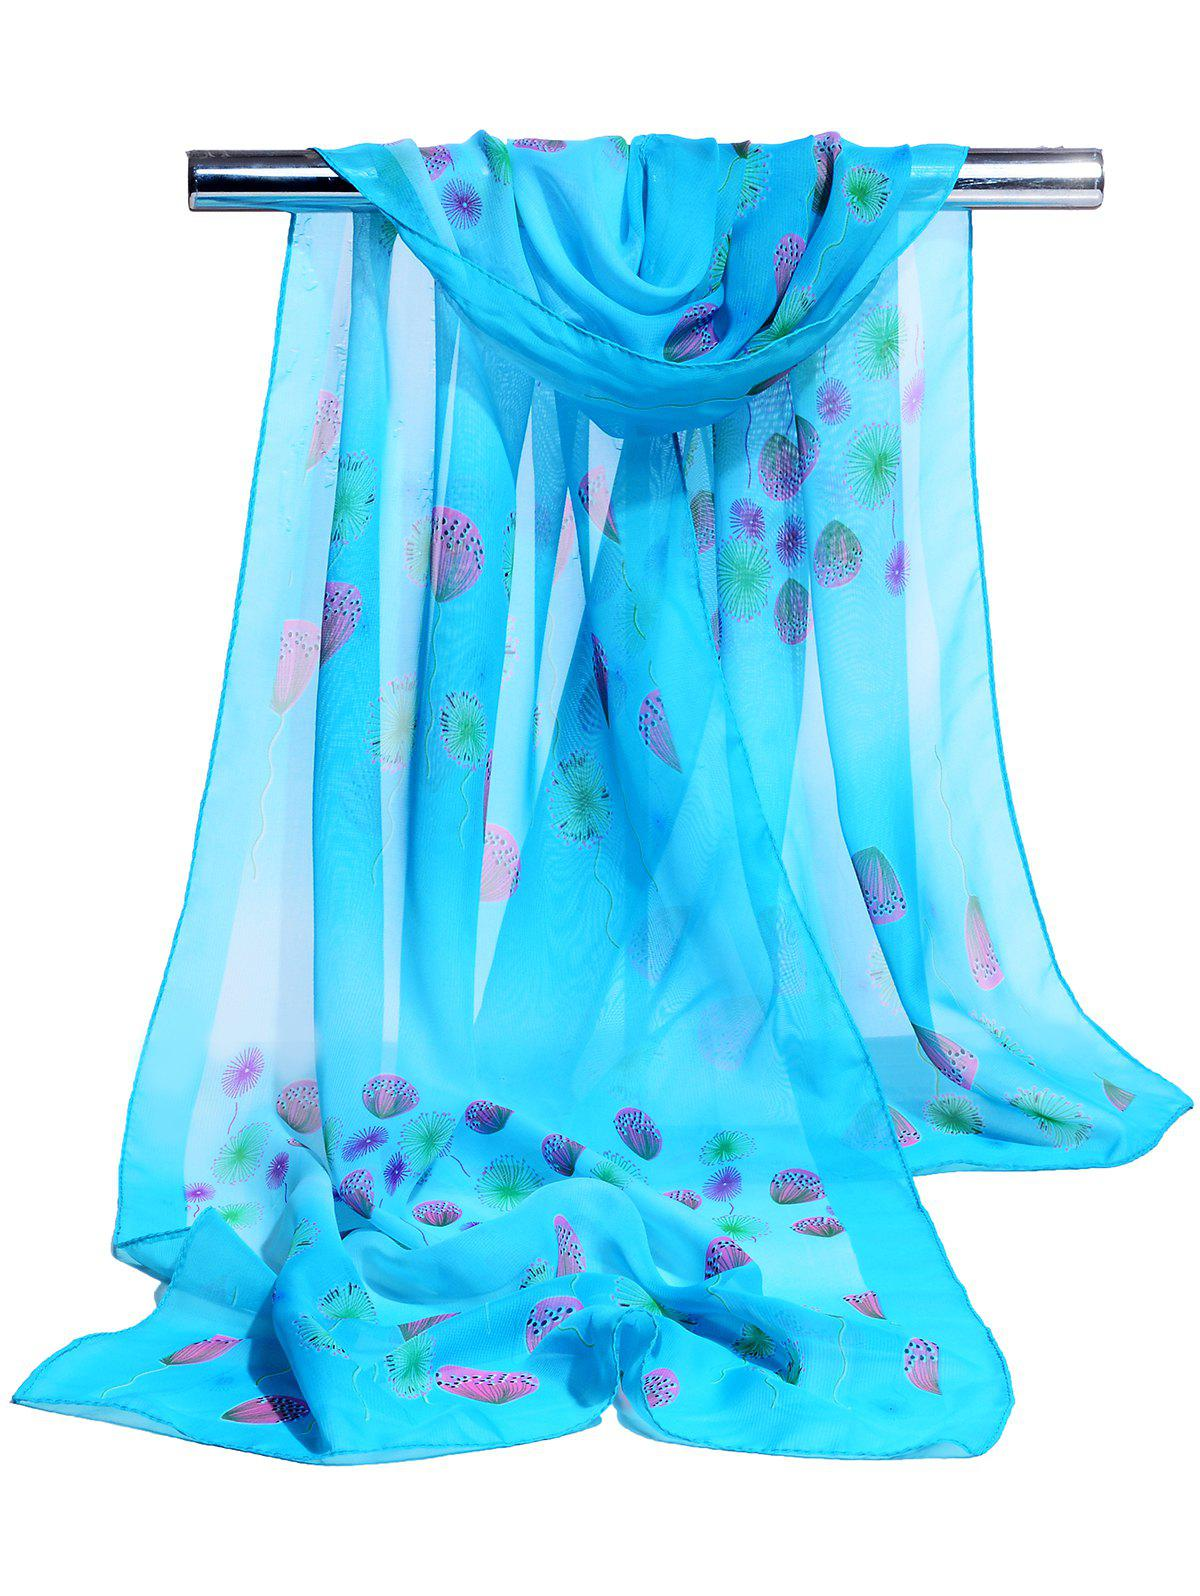 Unique Dandelion Pattern Embellished Chiffon Scarf - BLUE